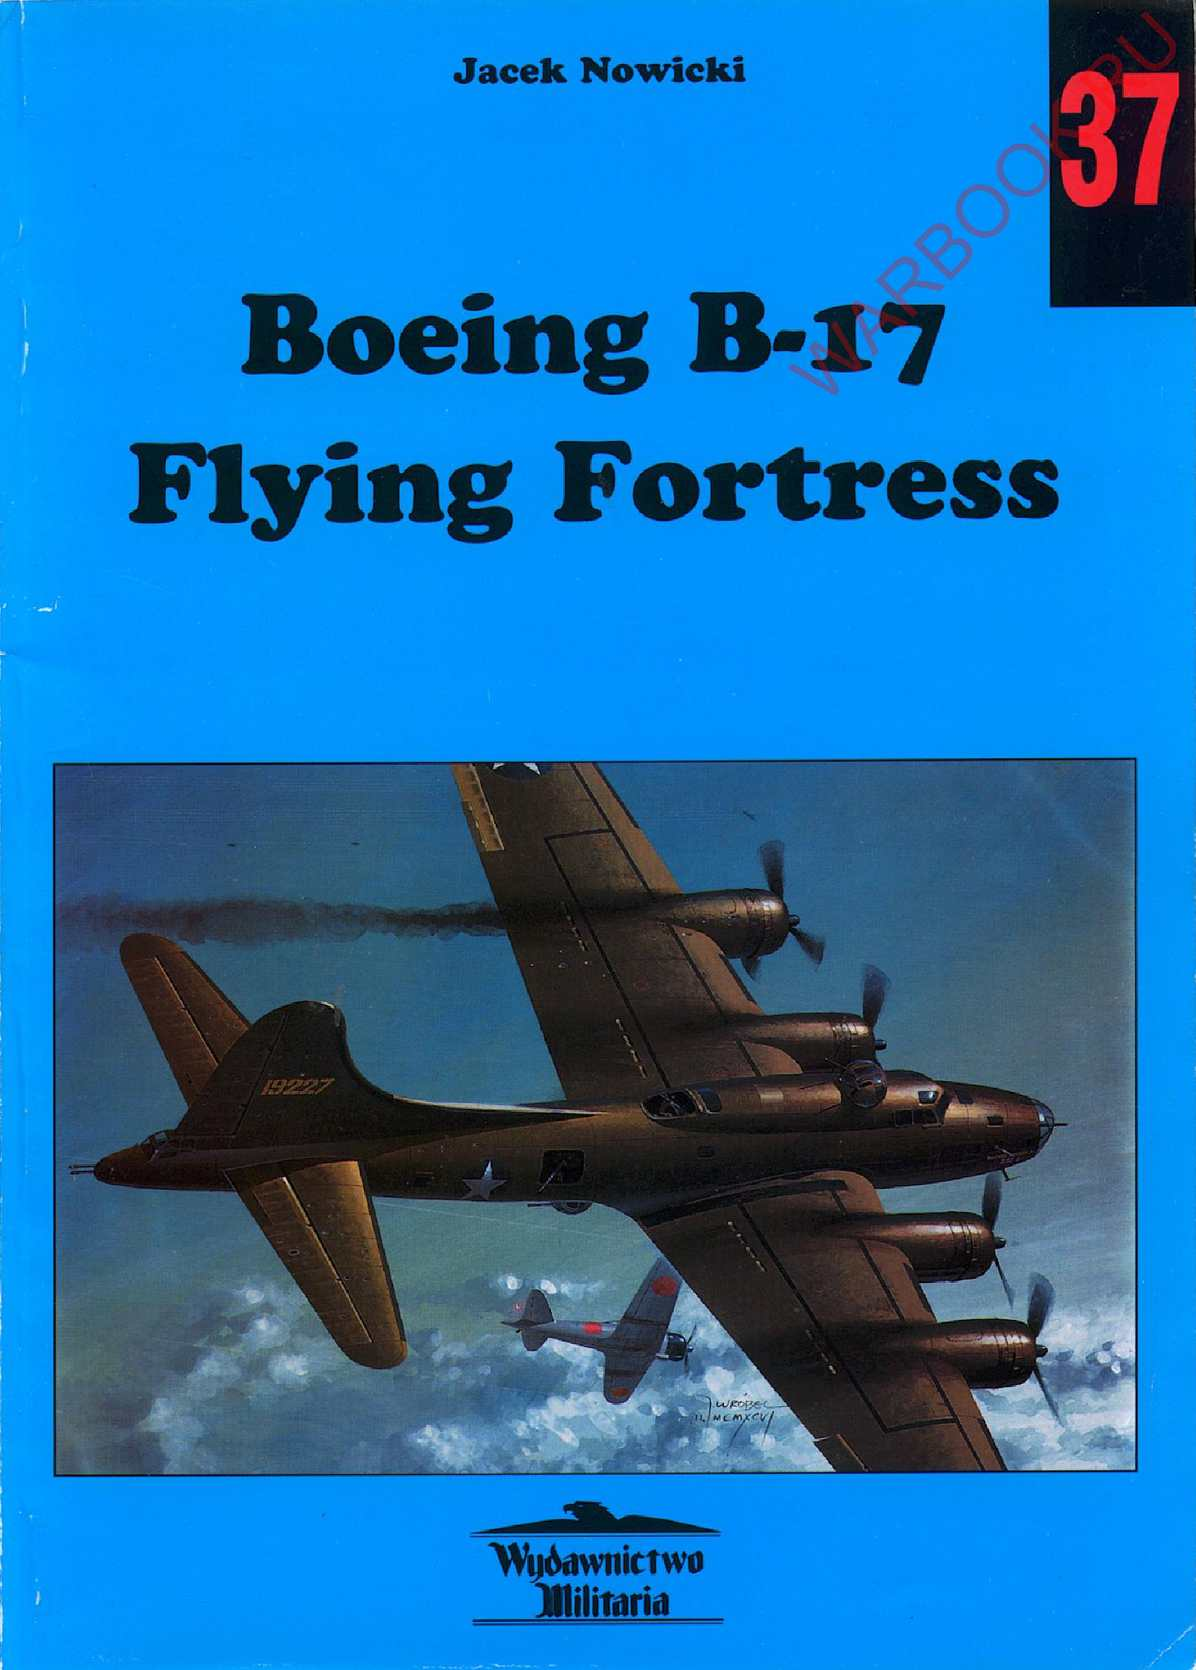 Wydawnictwo Militaria 37 Boeing B-17 Flying Fortress